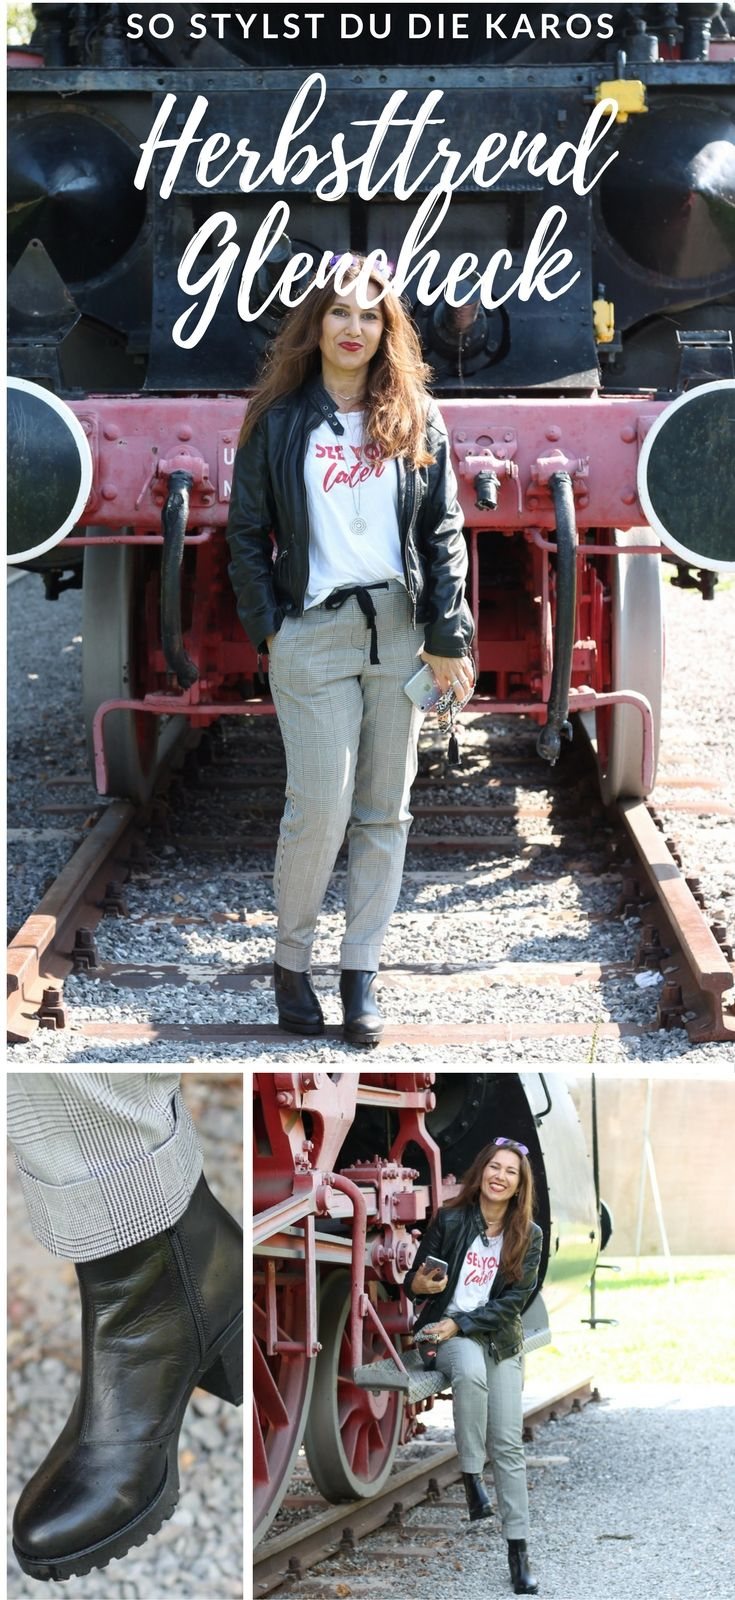 a10ccbc435 So stylst Du die neue Herbstmode mit Glencheck & Co. Lederjacke, Boots und  Glencheck